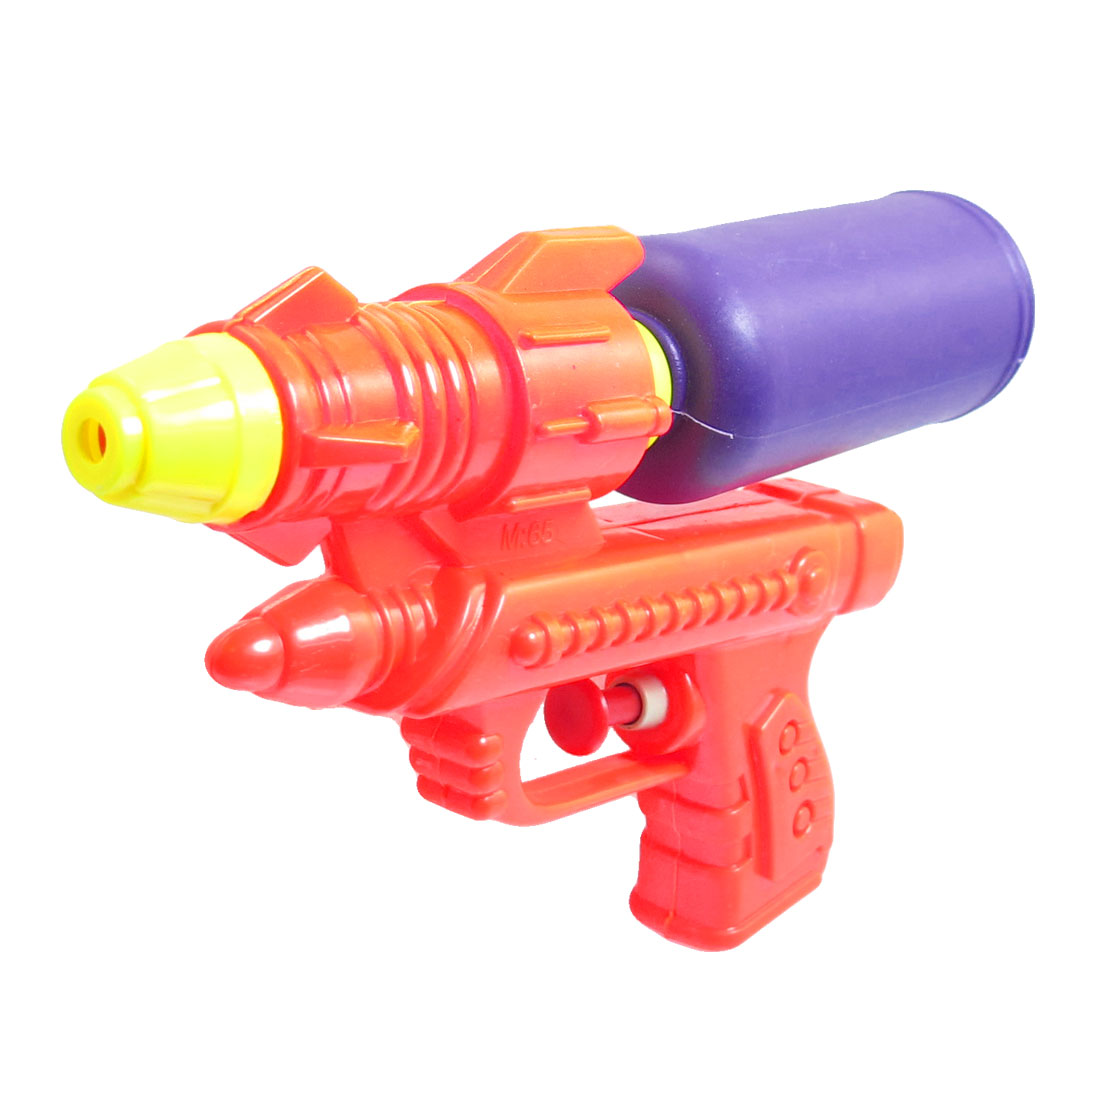 "7.5"" Length Water Gun Toy Purple Orangered for Child"